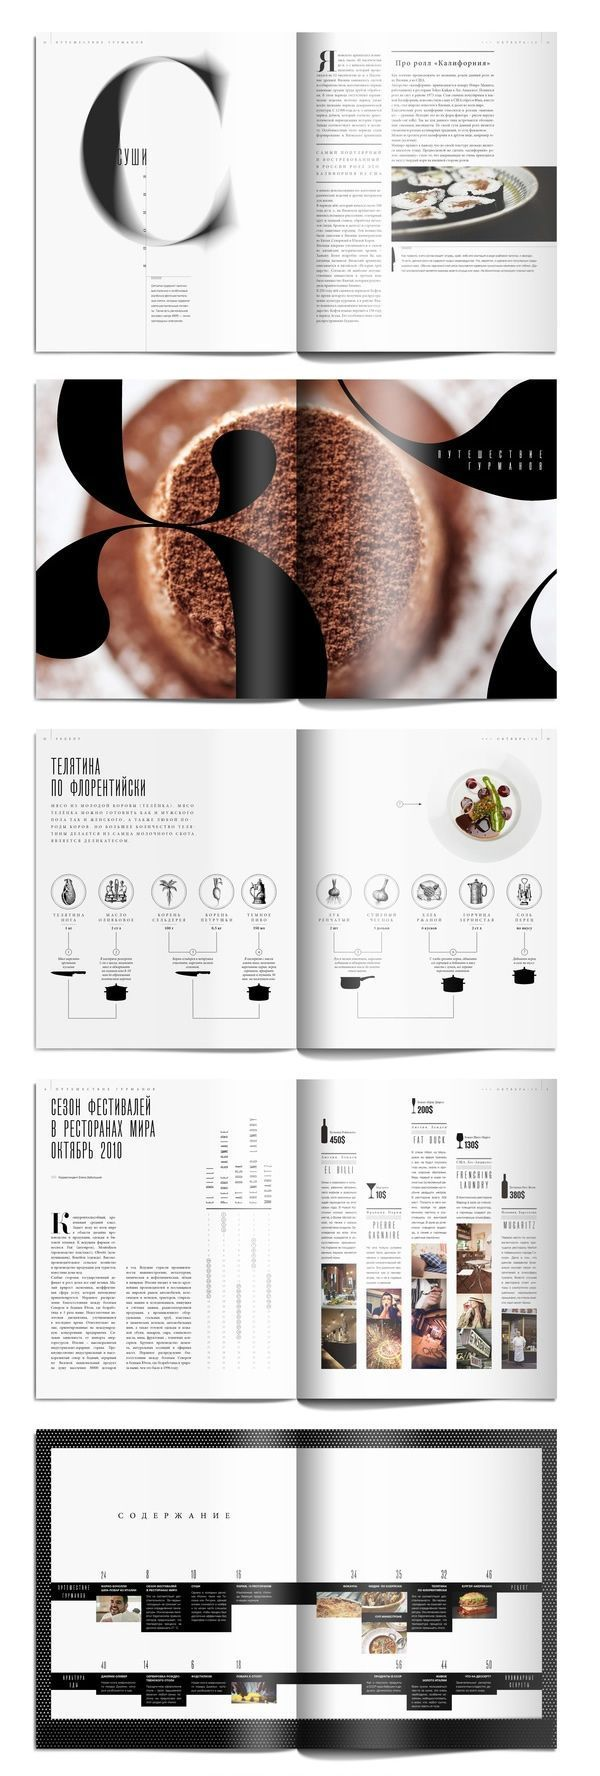 Editorial Design / Food Magazine Editorial Design — Designspiration